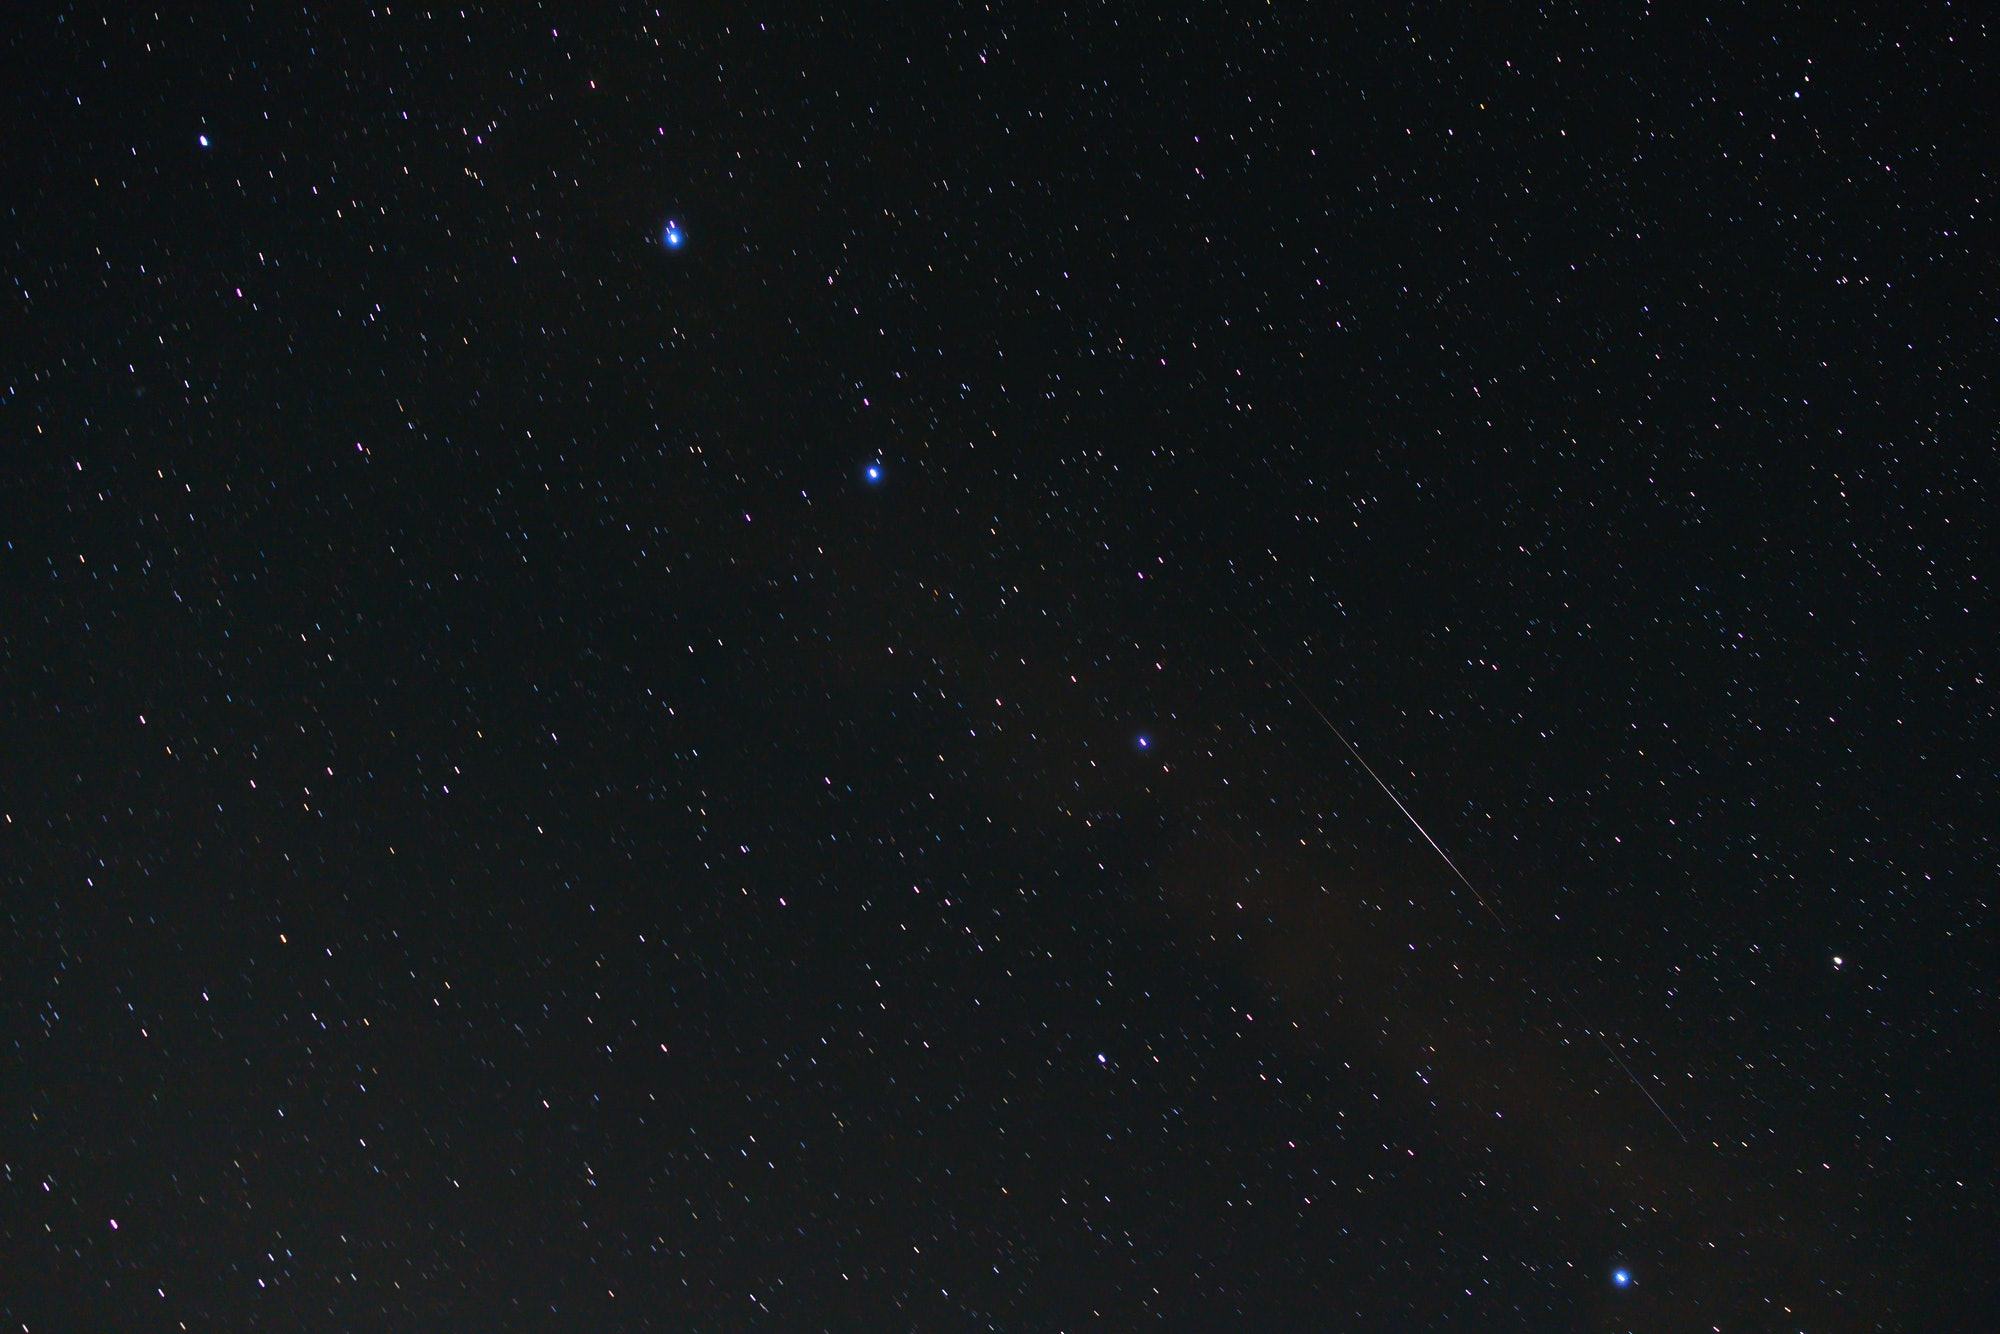 Big Dipper with Perseid Meteor going through it